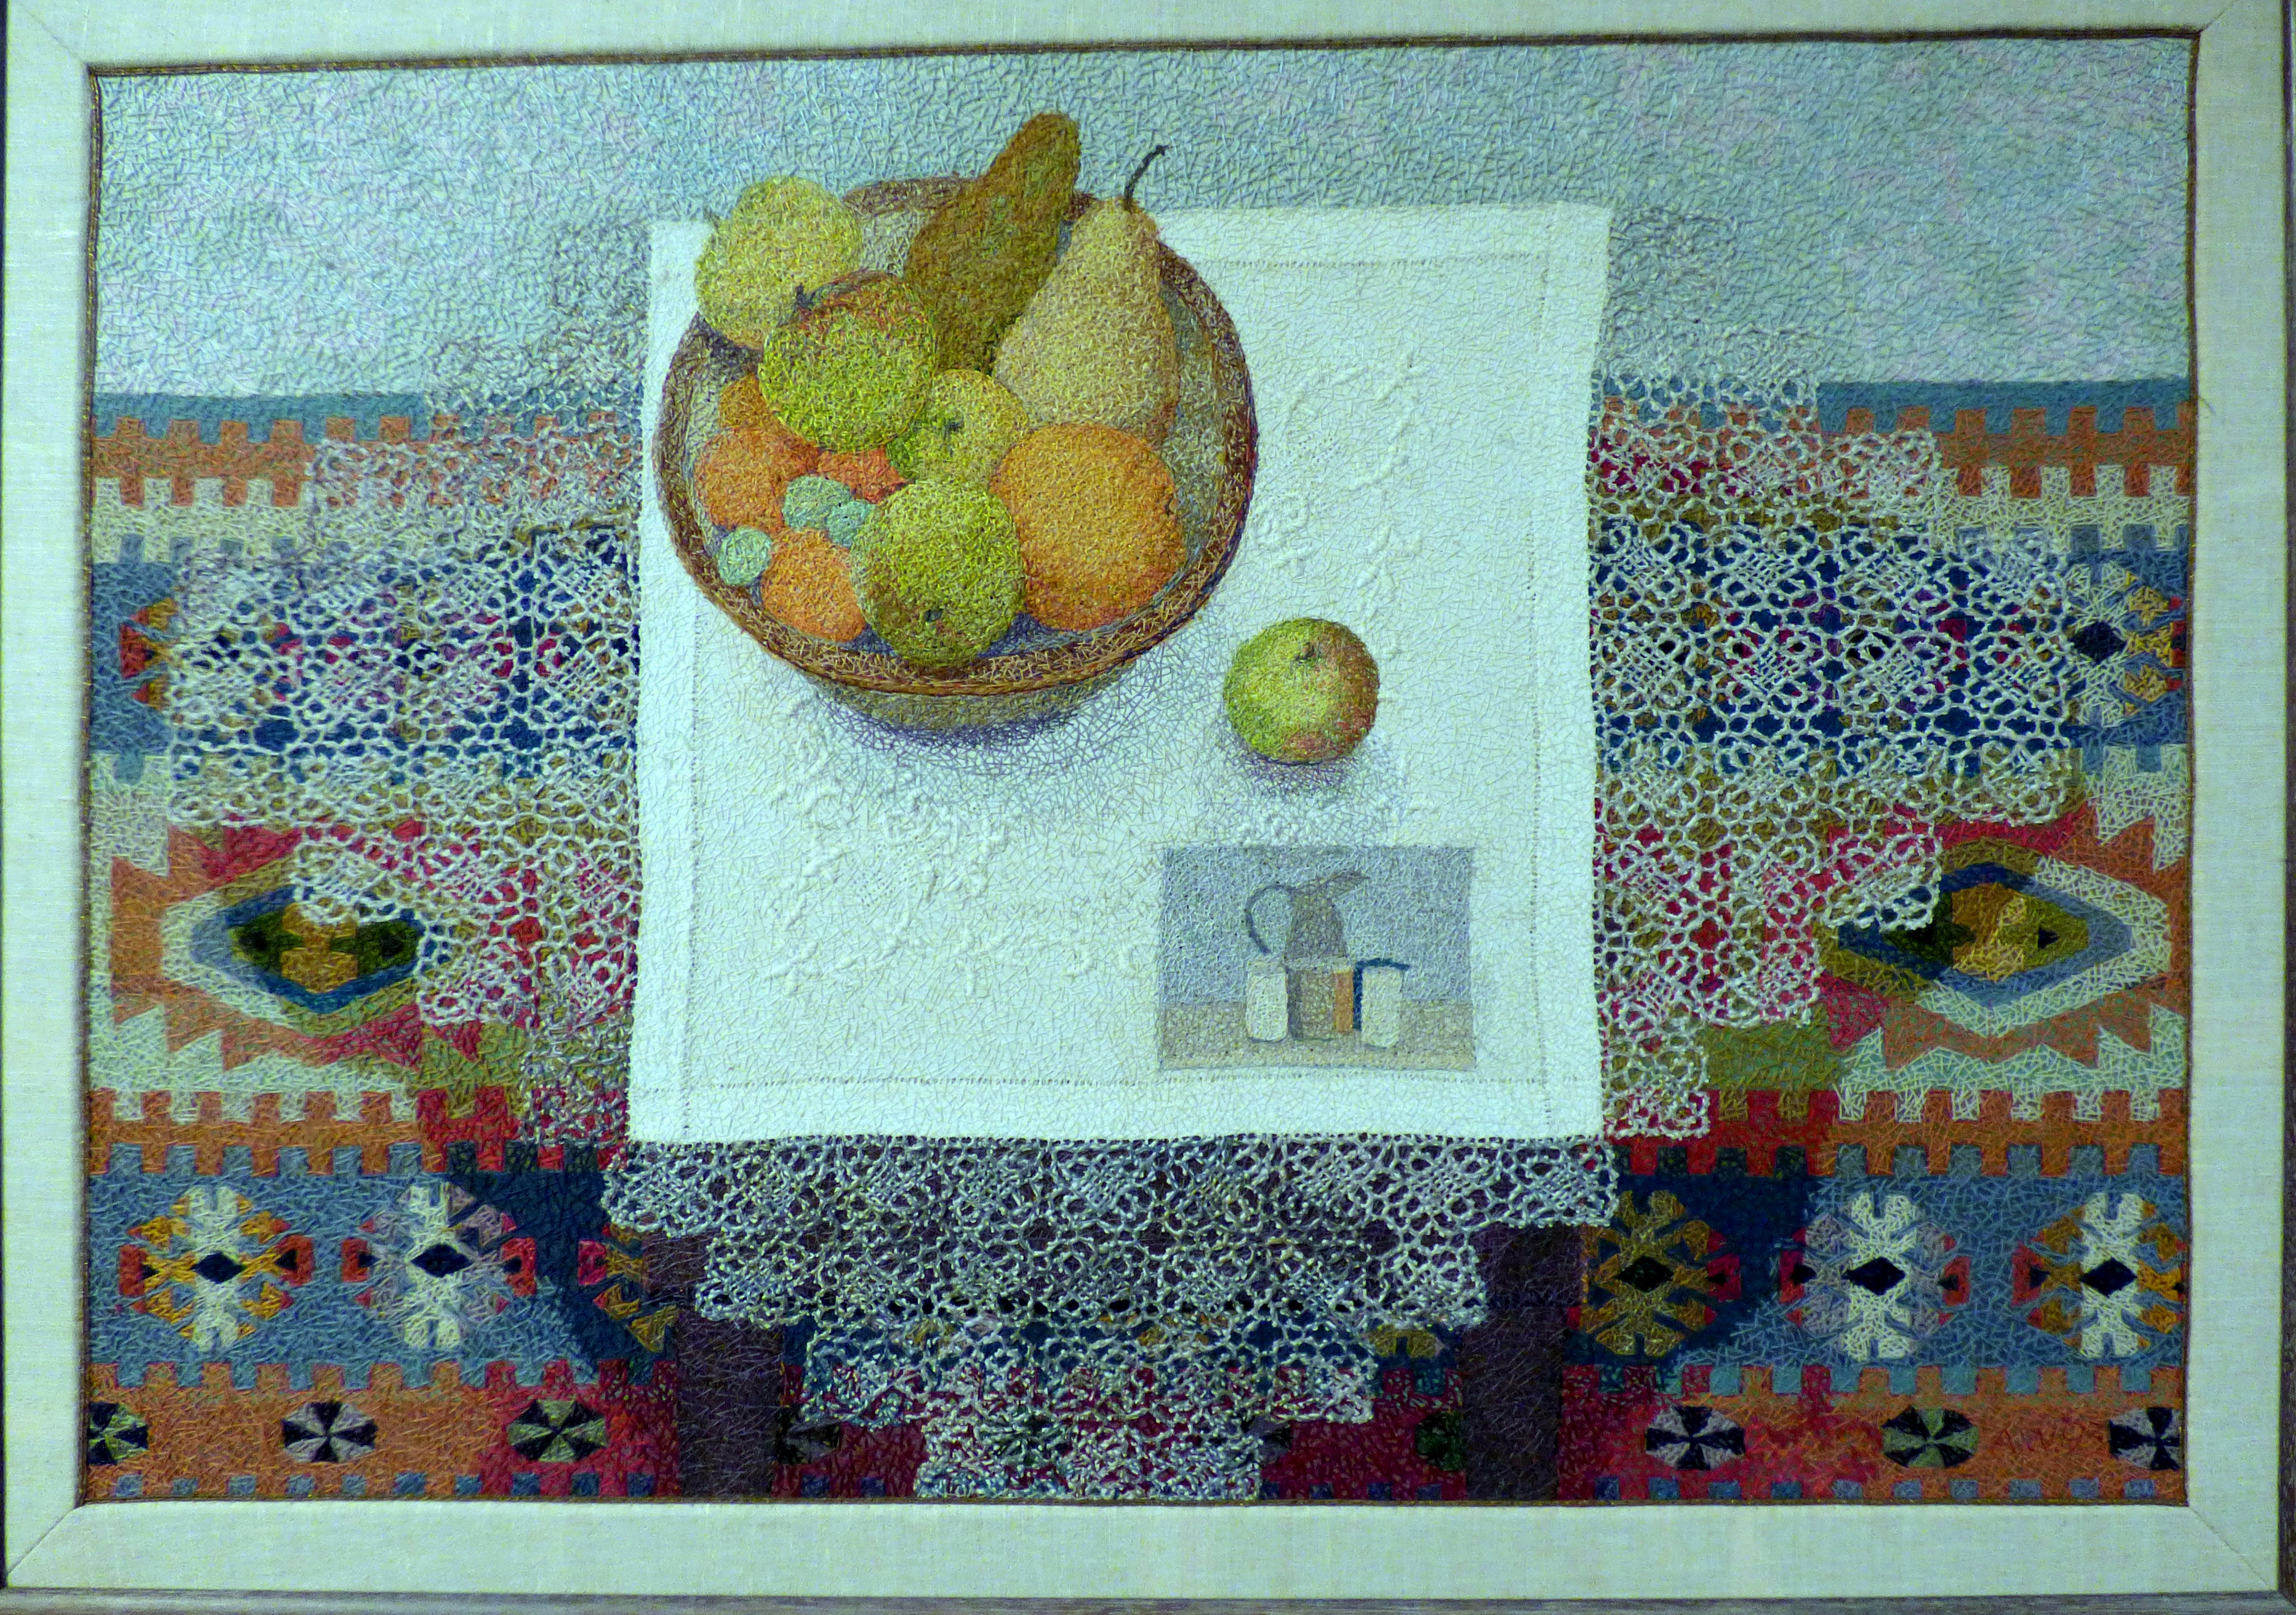 STILL-LIFE by Audrey Walker, stitched textile, 1993